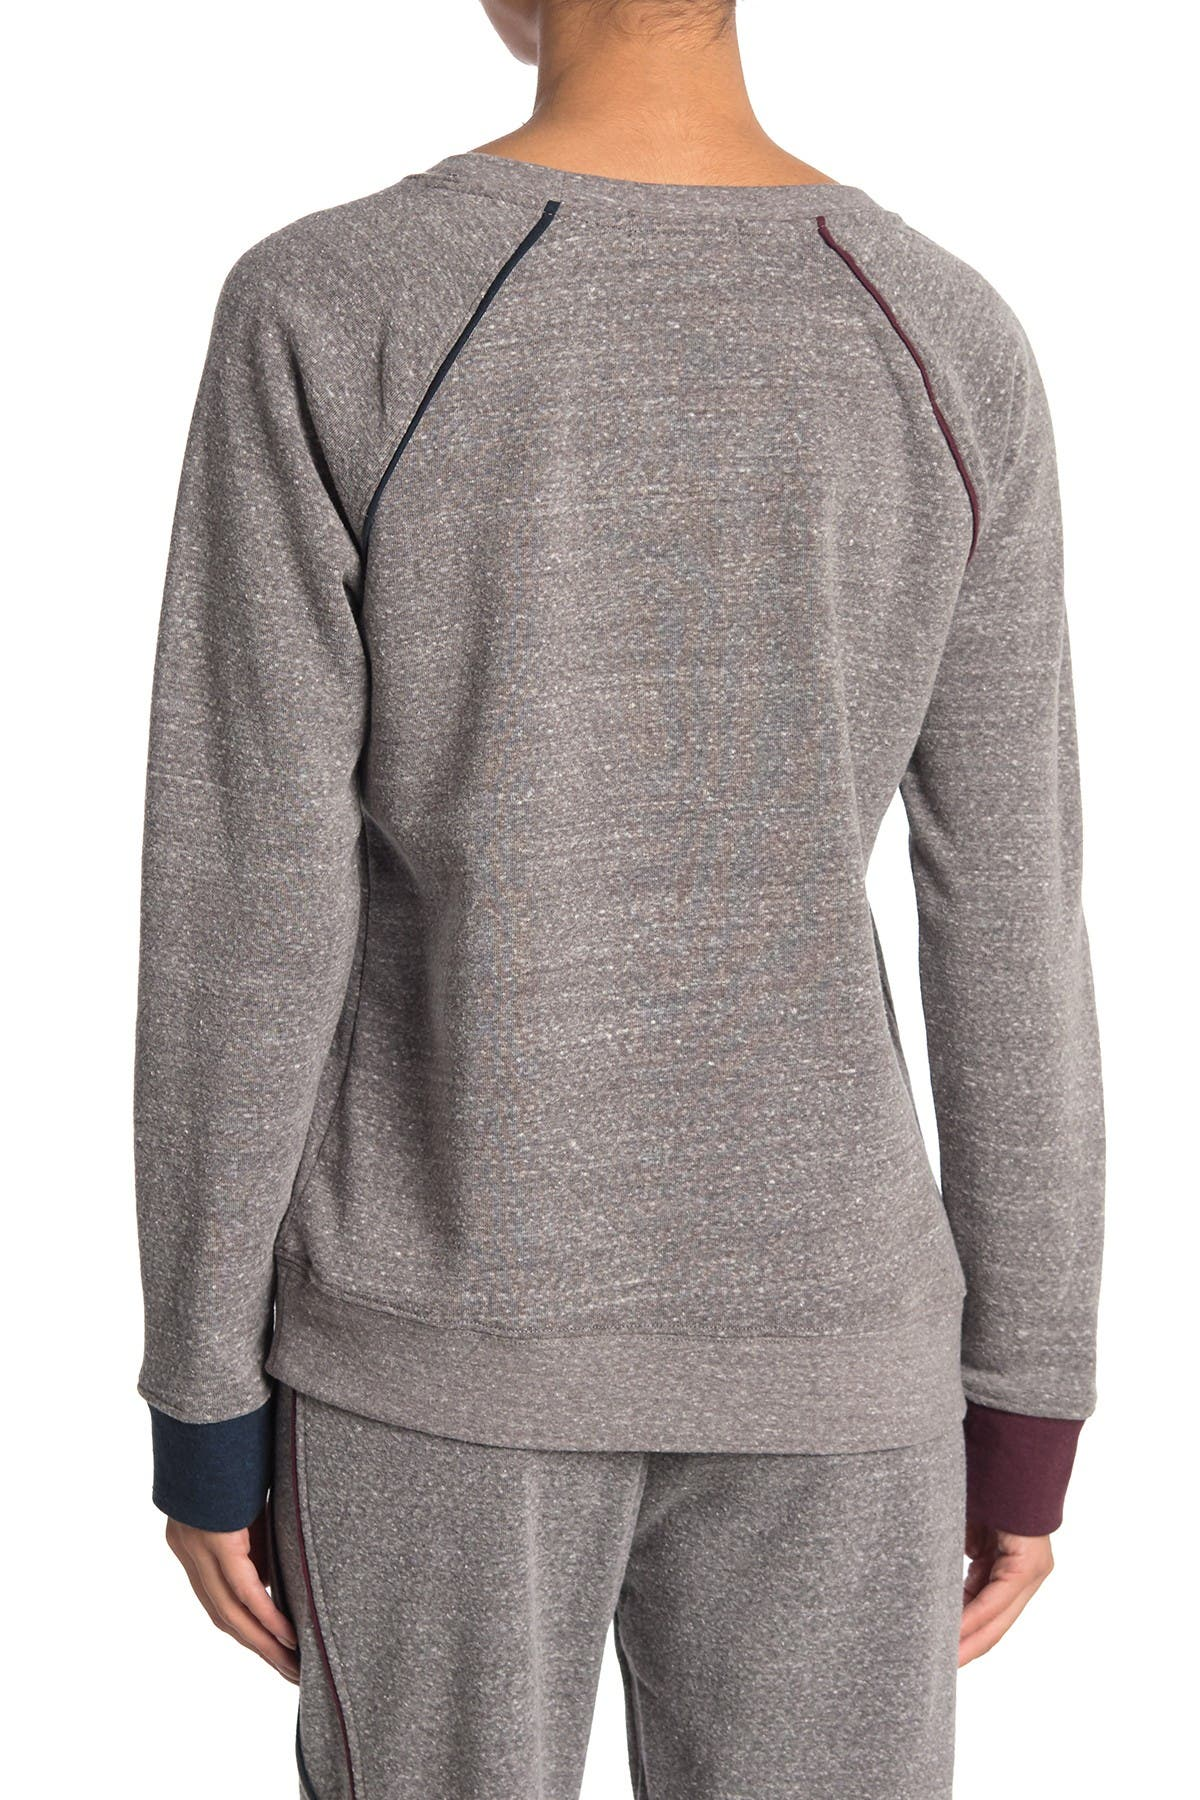 Image of Threads 4 Thought Chrissie Pullover Sweatshirt